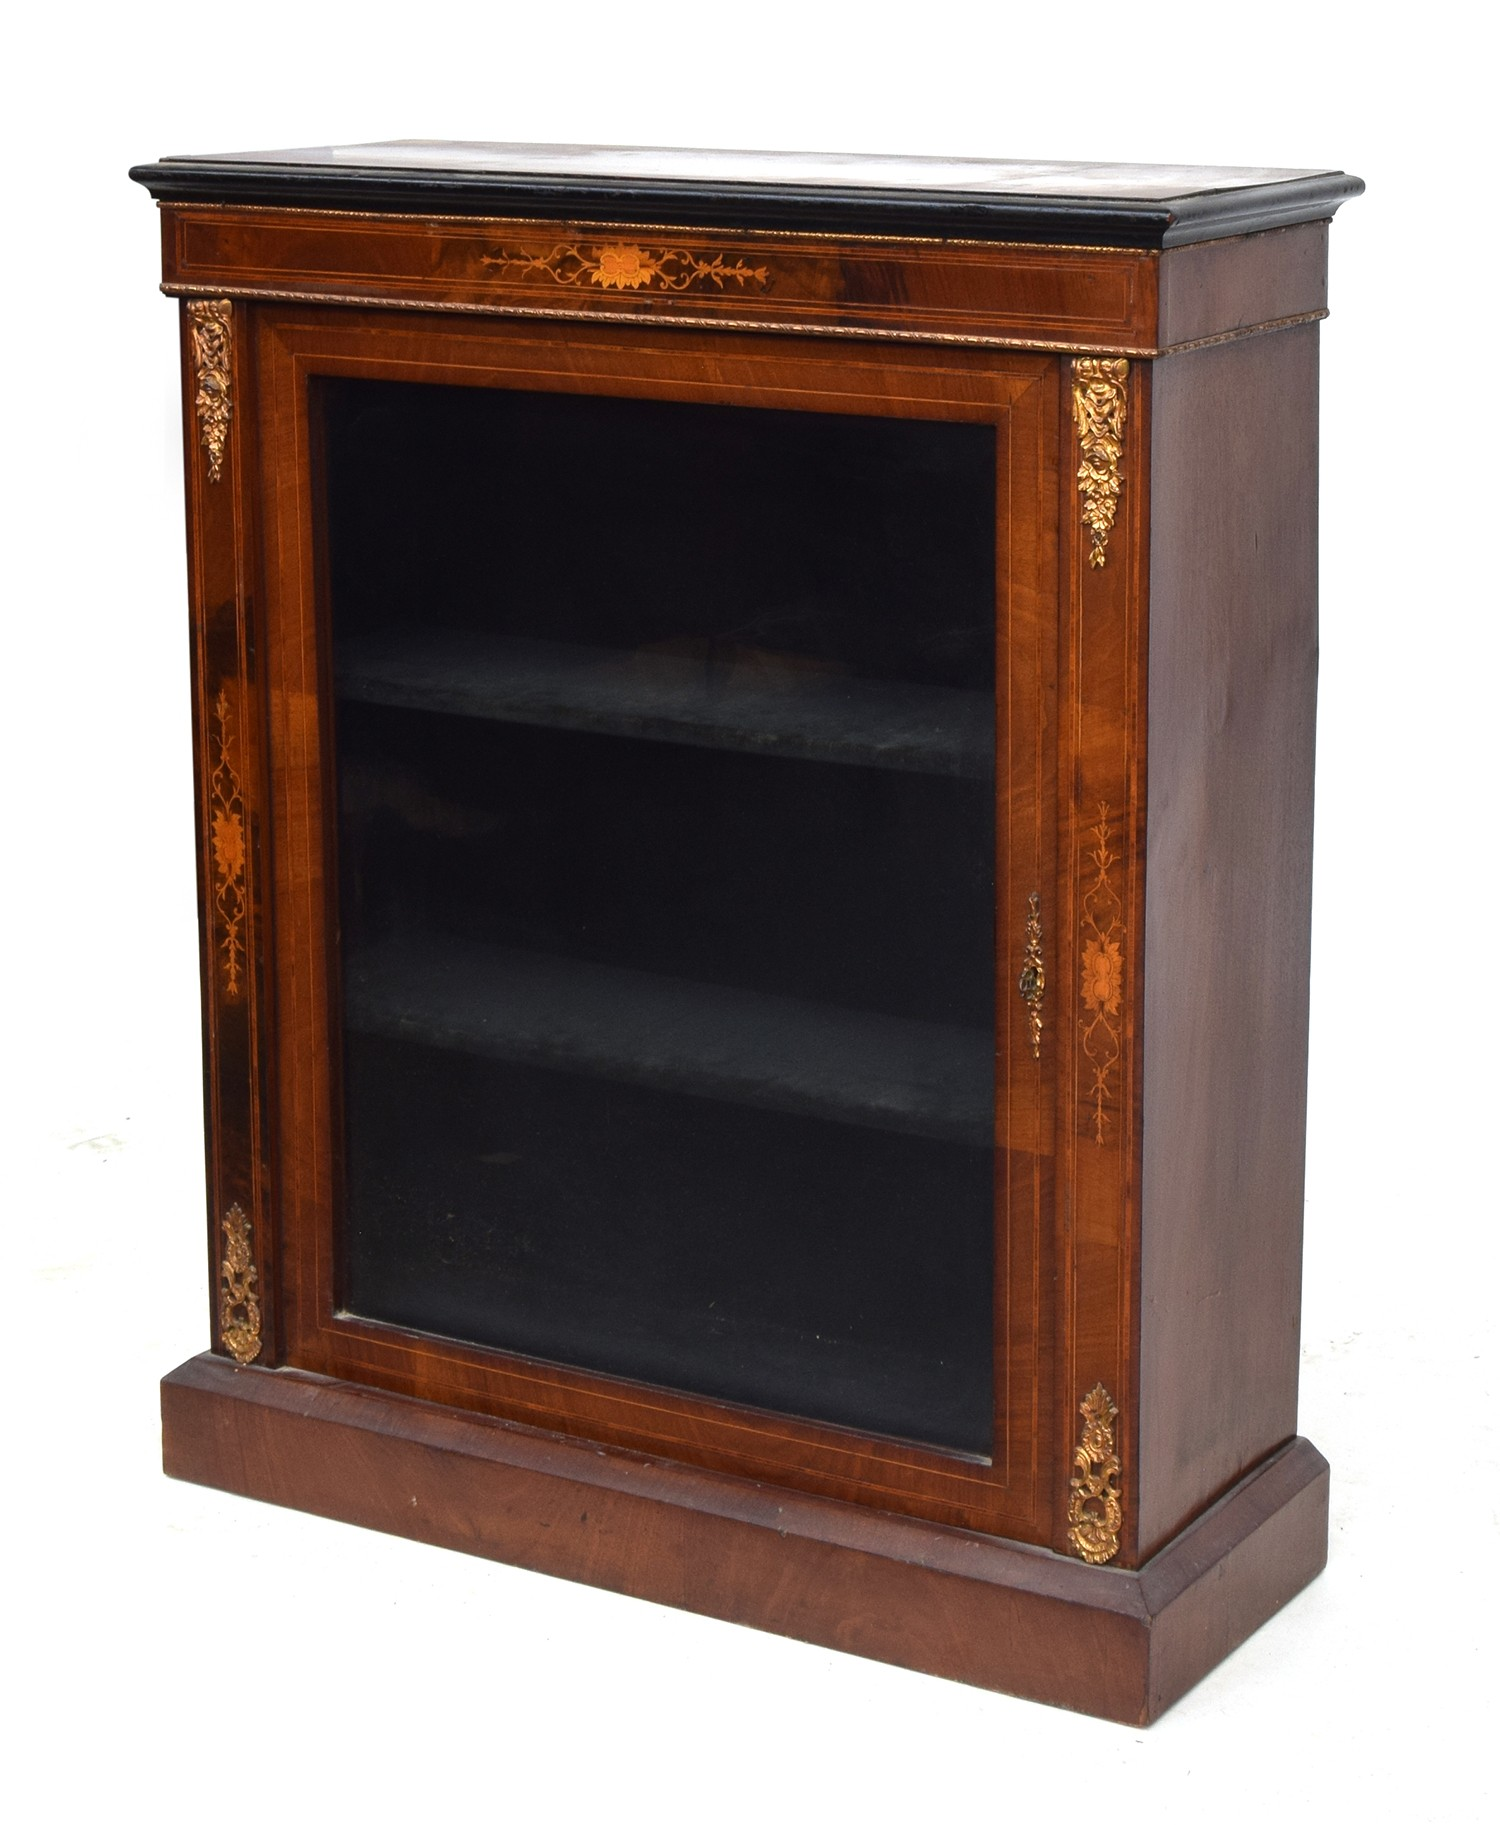 A small mahogany, marquetry and ormolu mounted glazed bookcase, the door opening to a baize lined